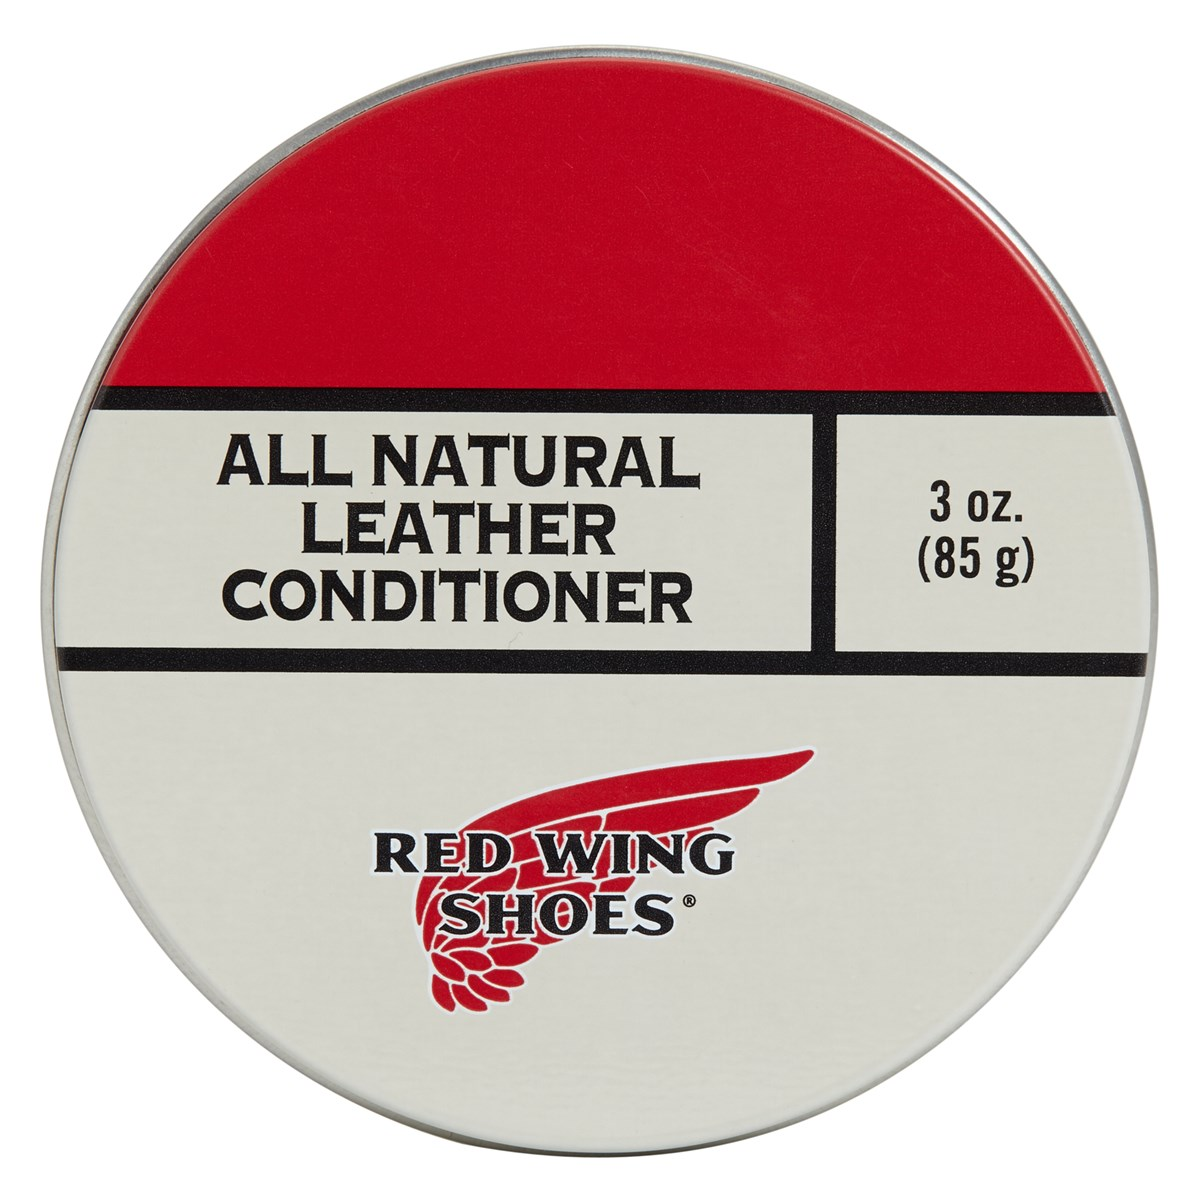 All Natural Leather Conditioner